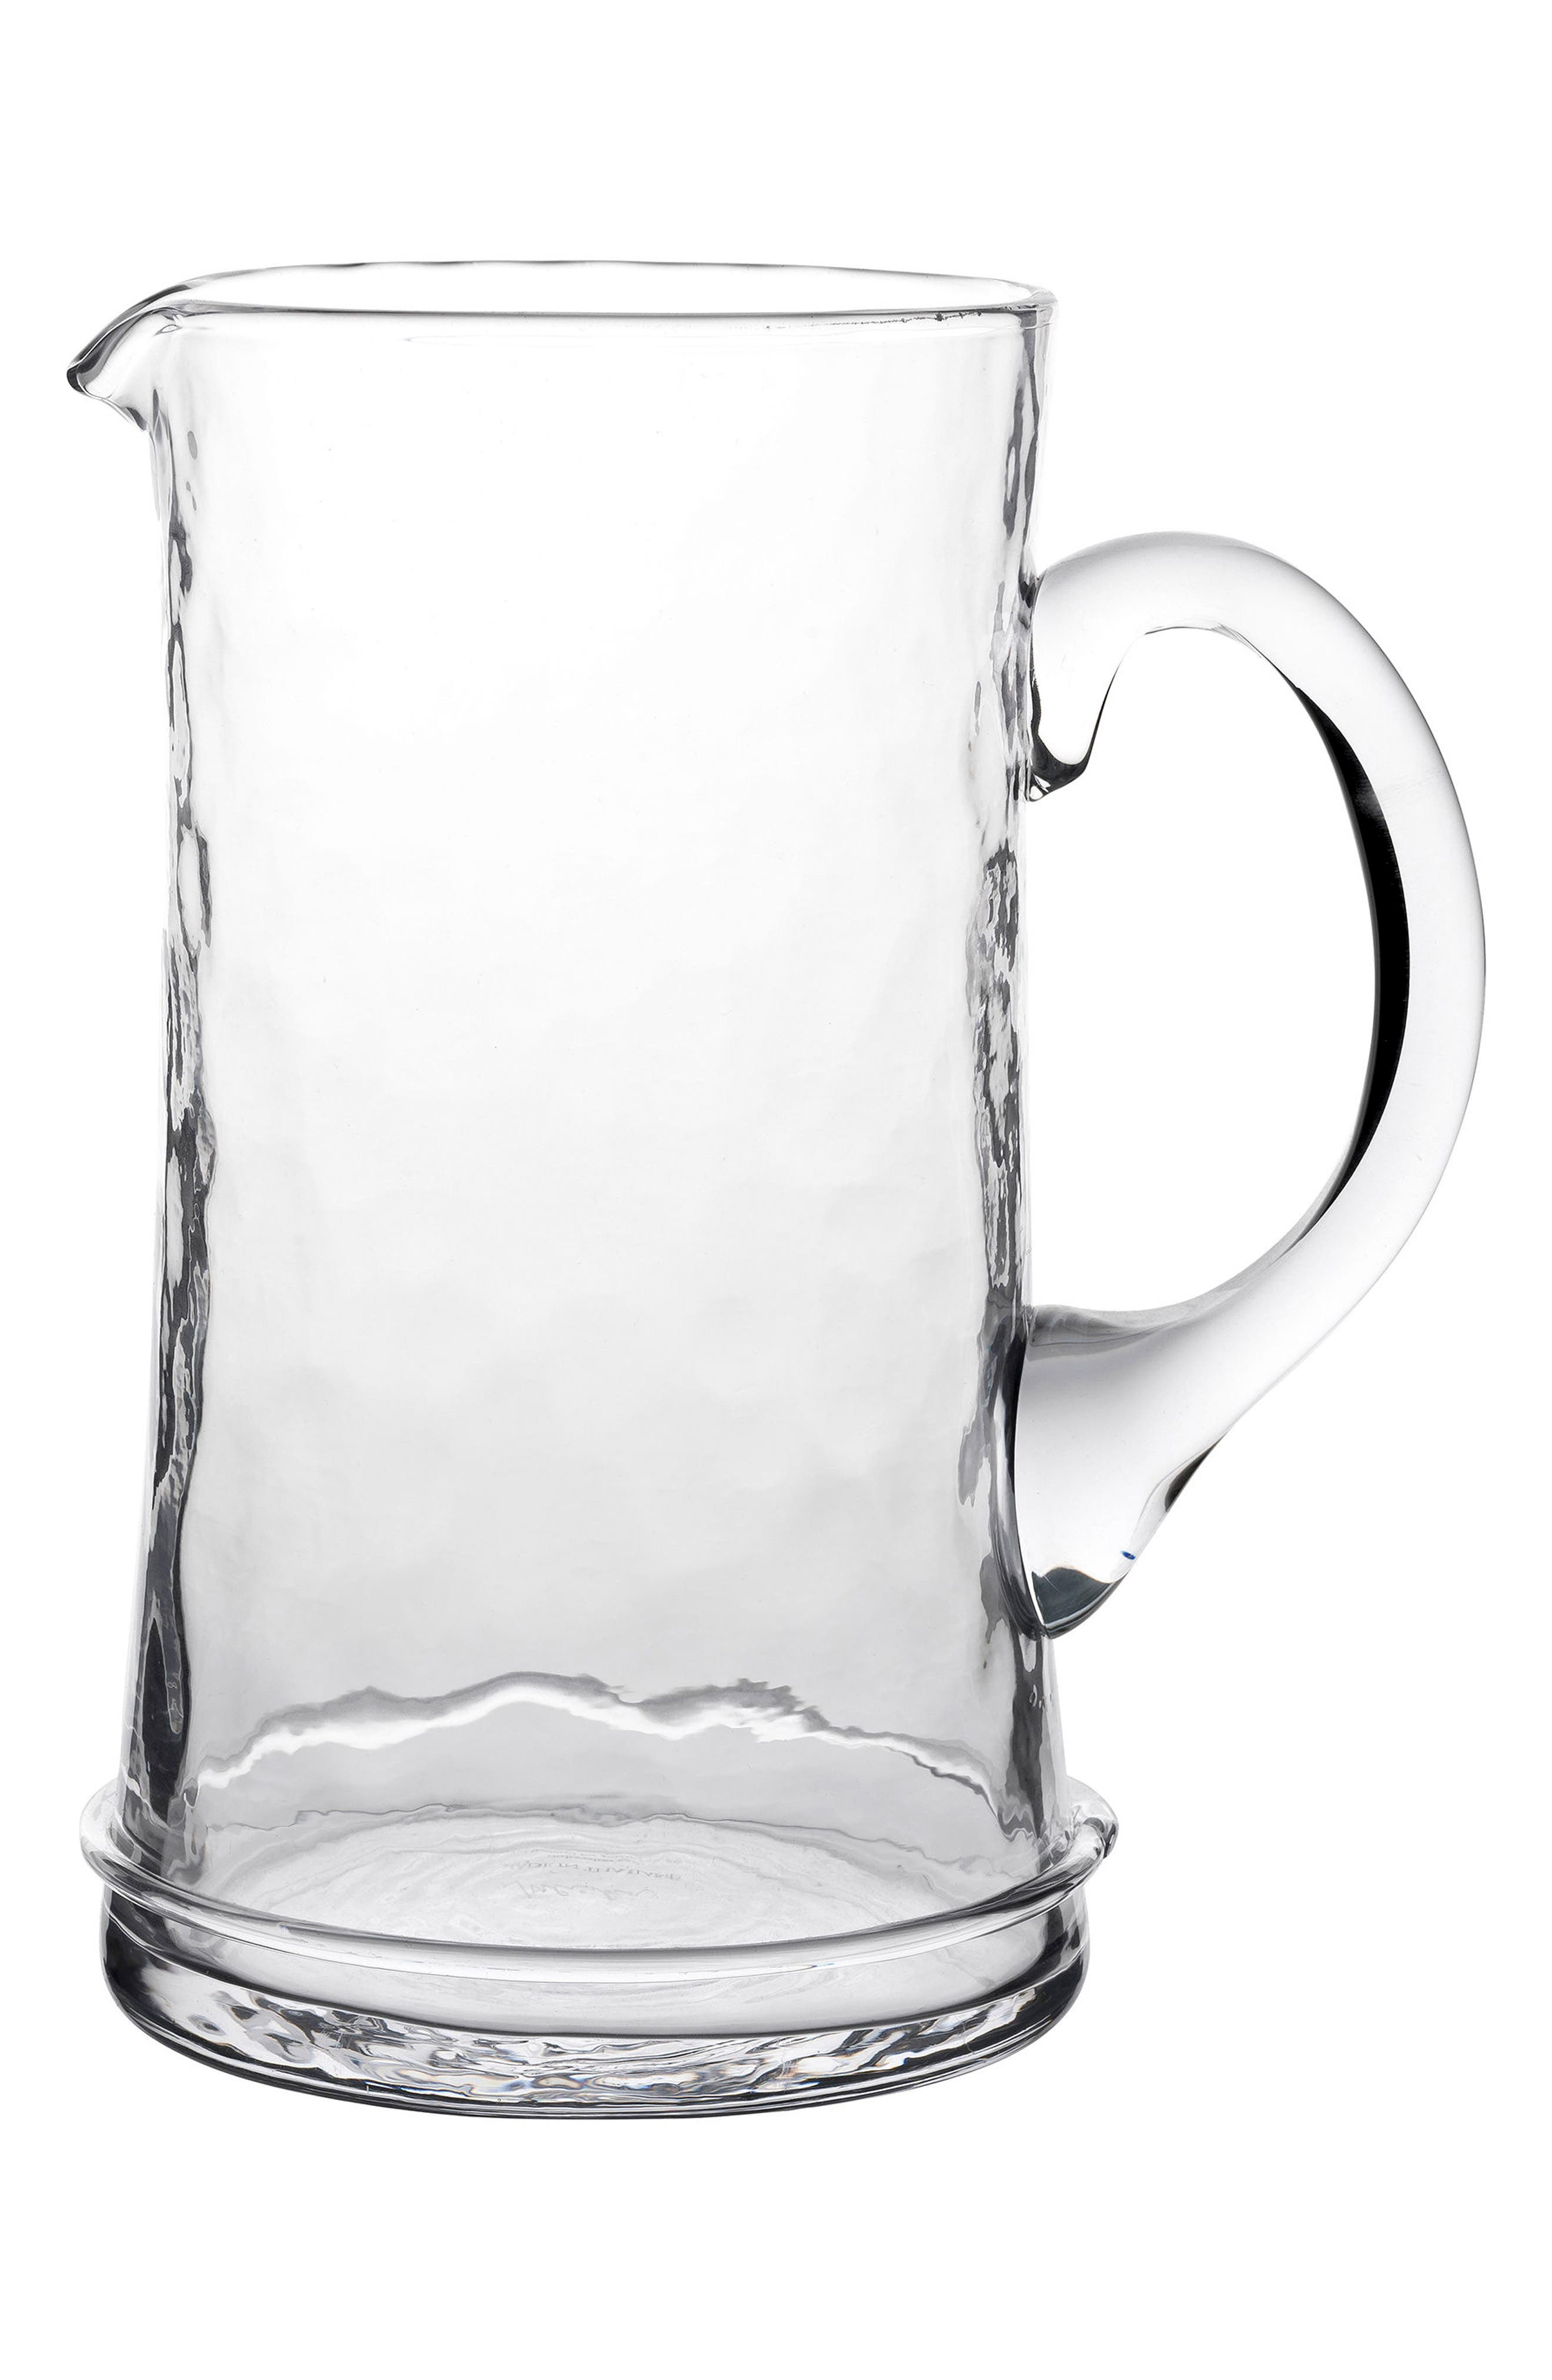 'Carine' Glass Pitcher,                         Main,                         color, White